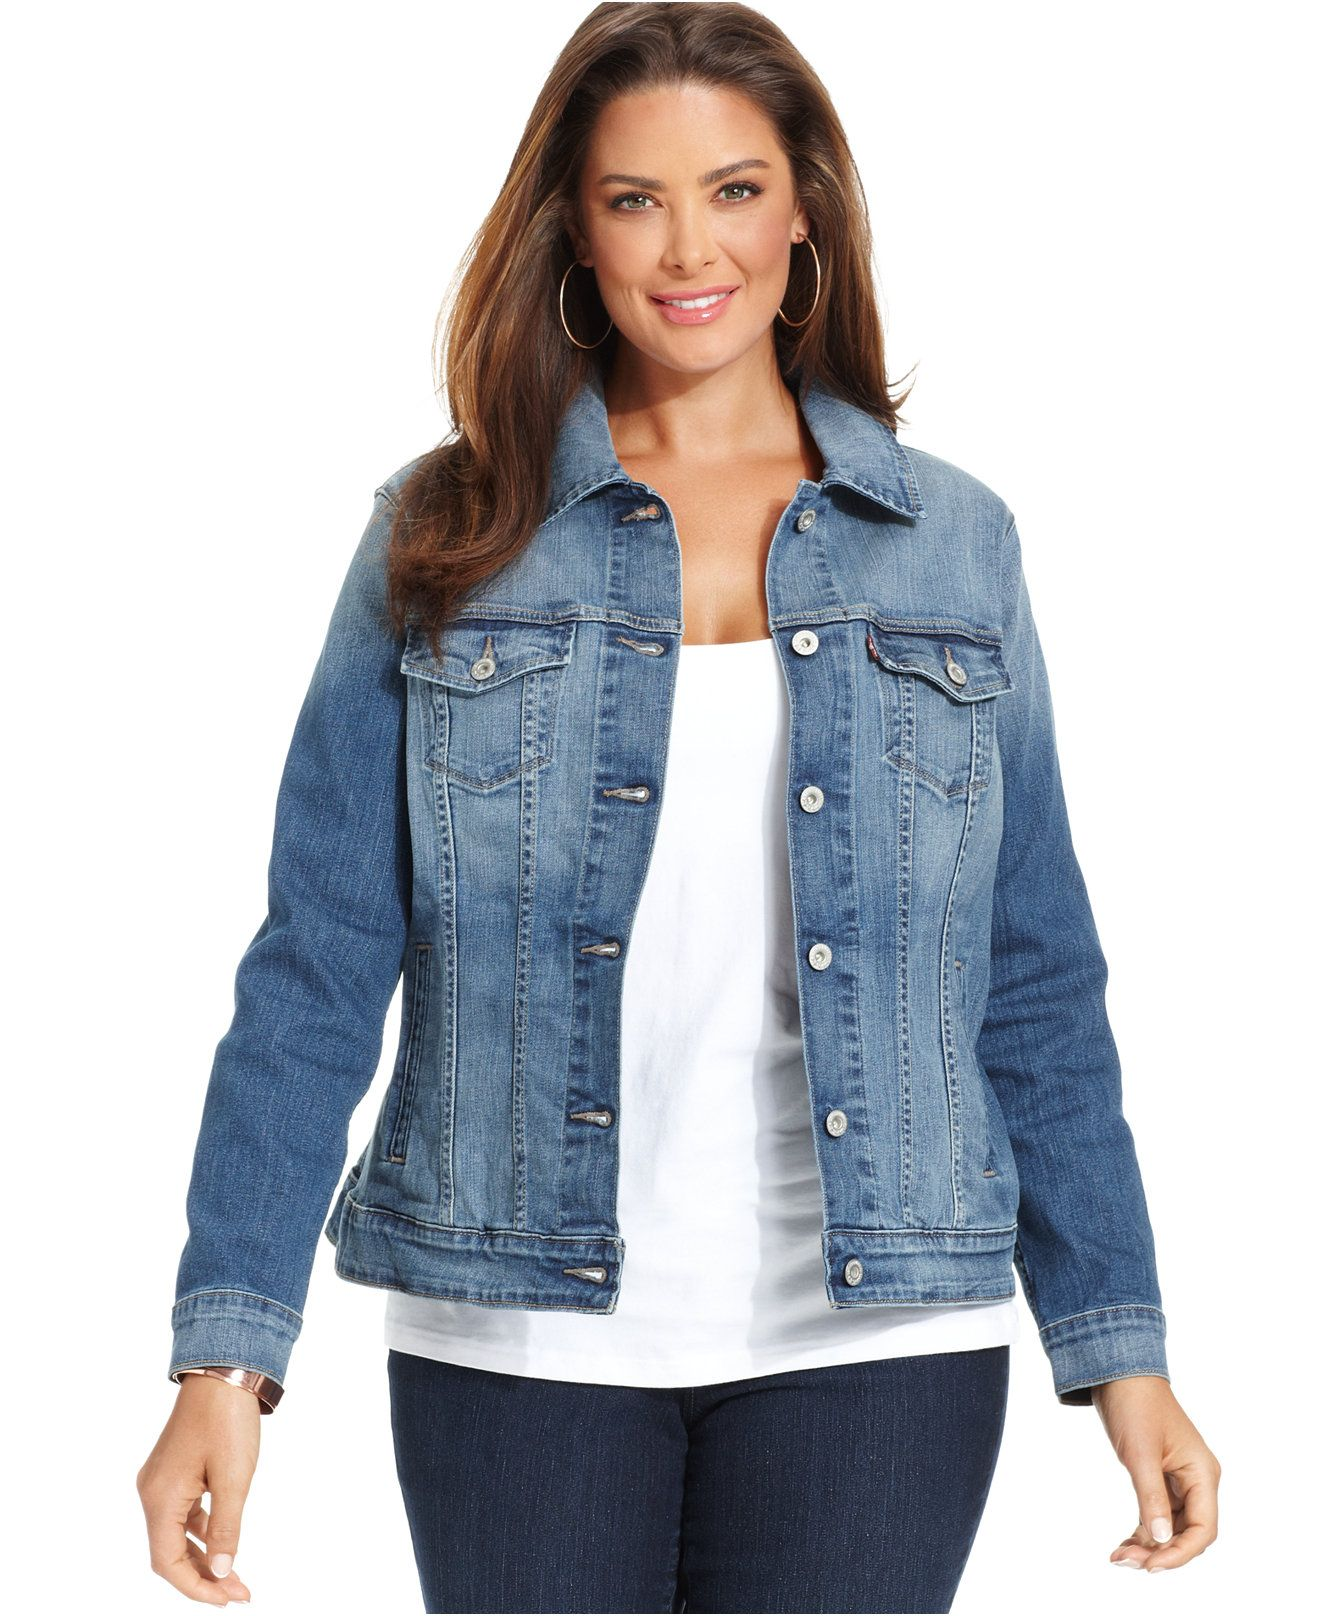 Levi's® Plus Size Denim Jacket Saddle Blue Wash - Jackets